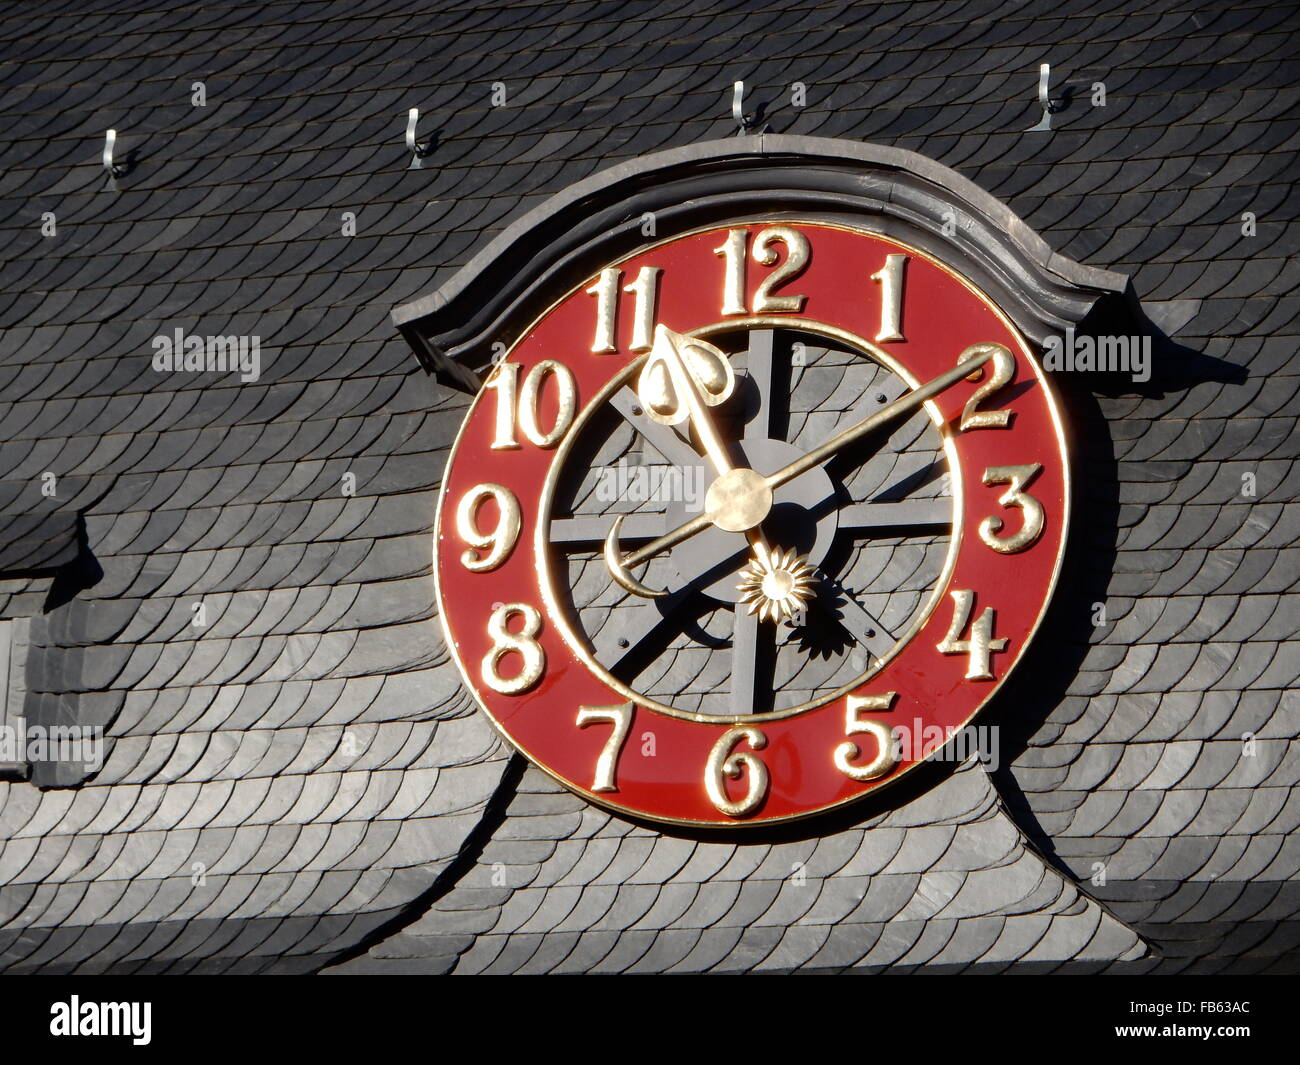 Watch with red dial-plate in Bonn, Germany - Stock Image